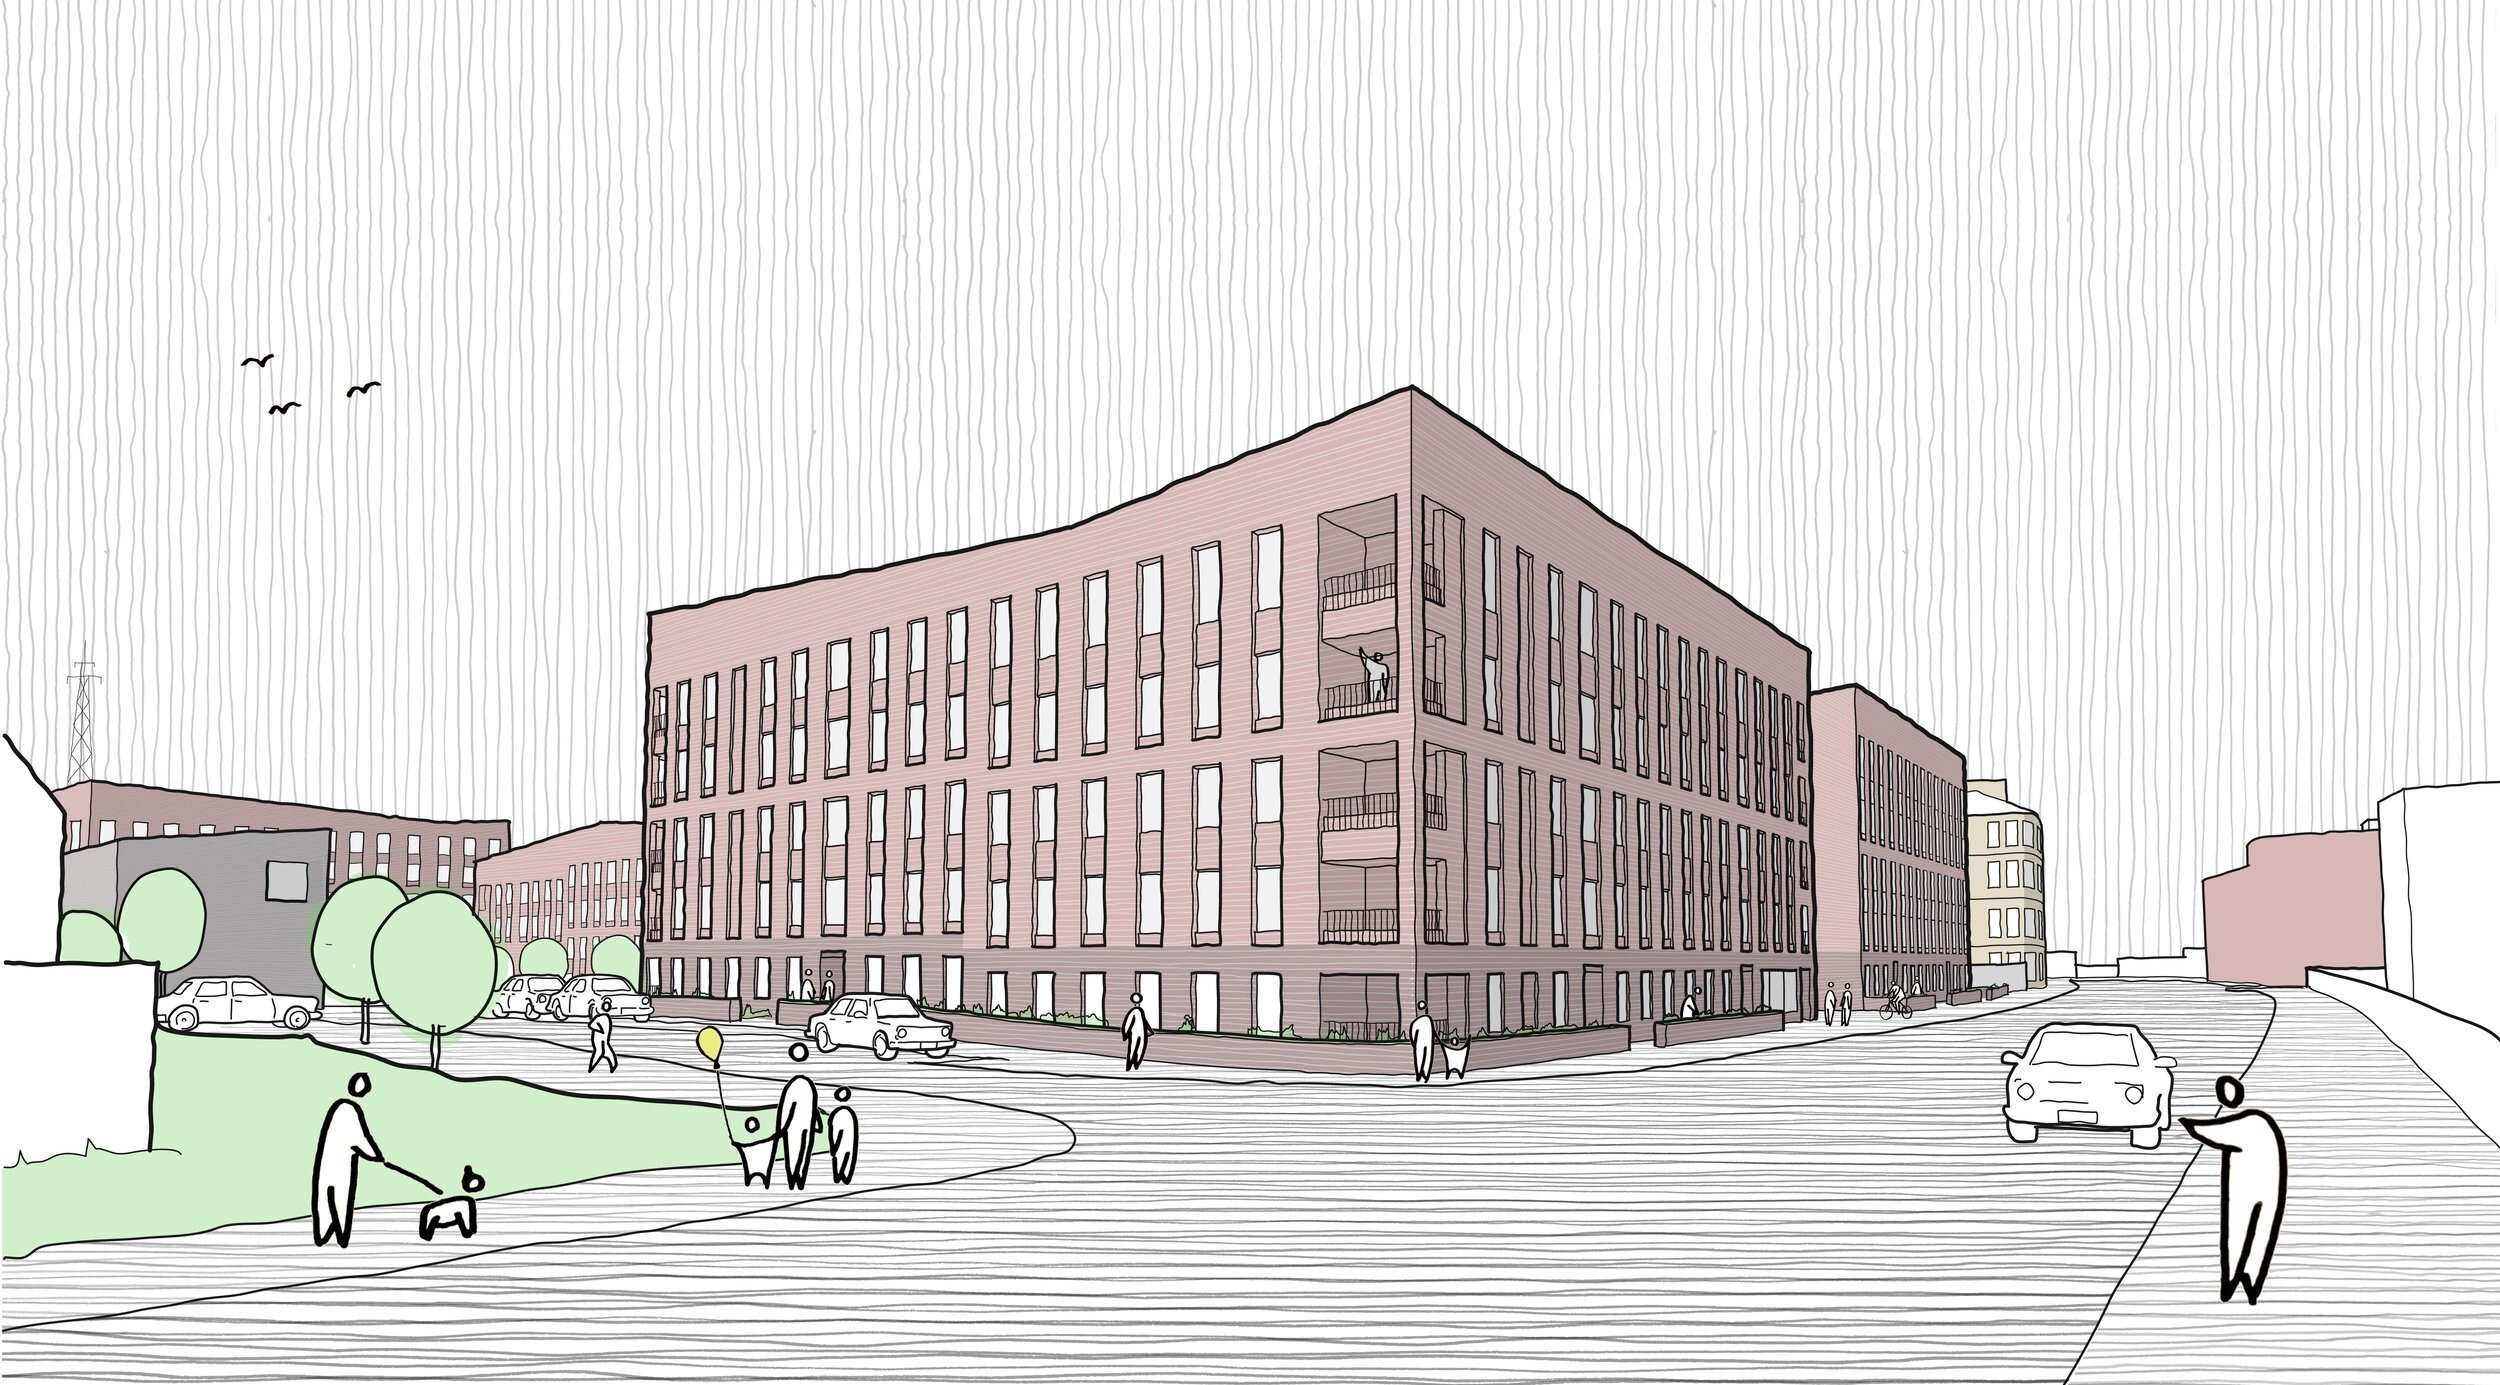 March 2019   We are very pleased to receive planning consent for our Maxwell Road / Foundry housing scheme. A huge effort by all involved and very excited to see the scheme progress.